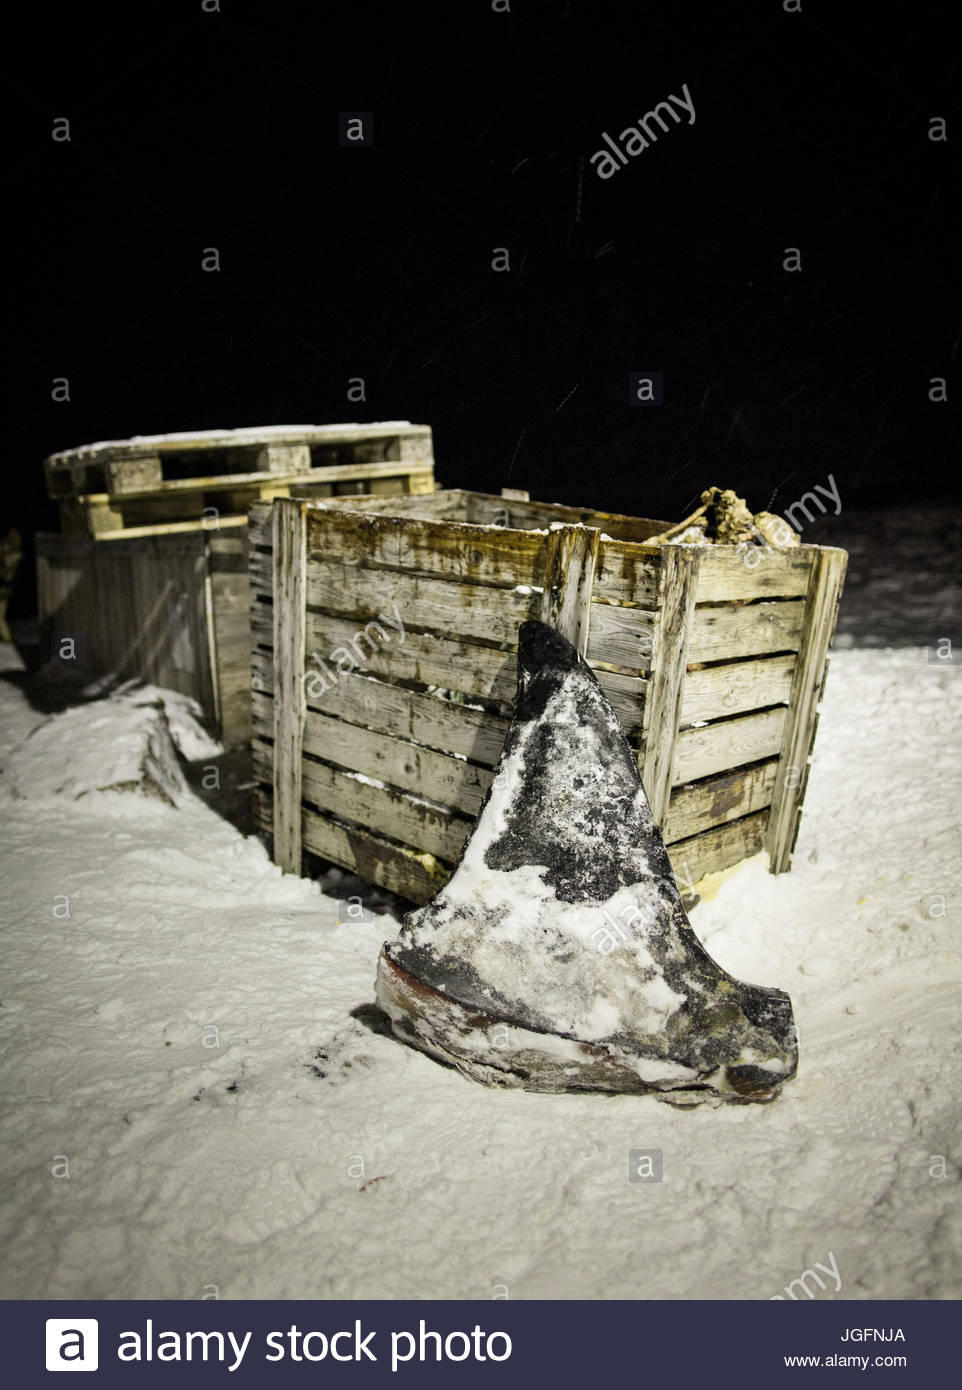 The dorsal fin of a killer whale, used as food for sled dogs and humans alike, is left outside the Inuit settlement Stock Photo